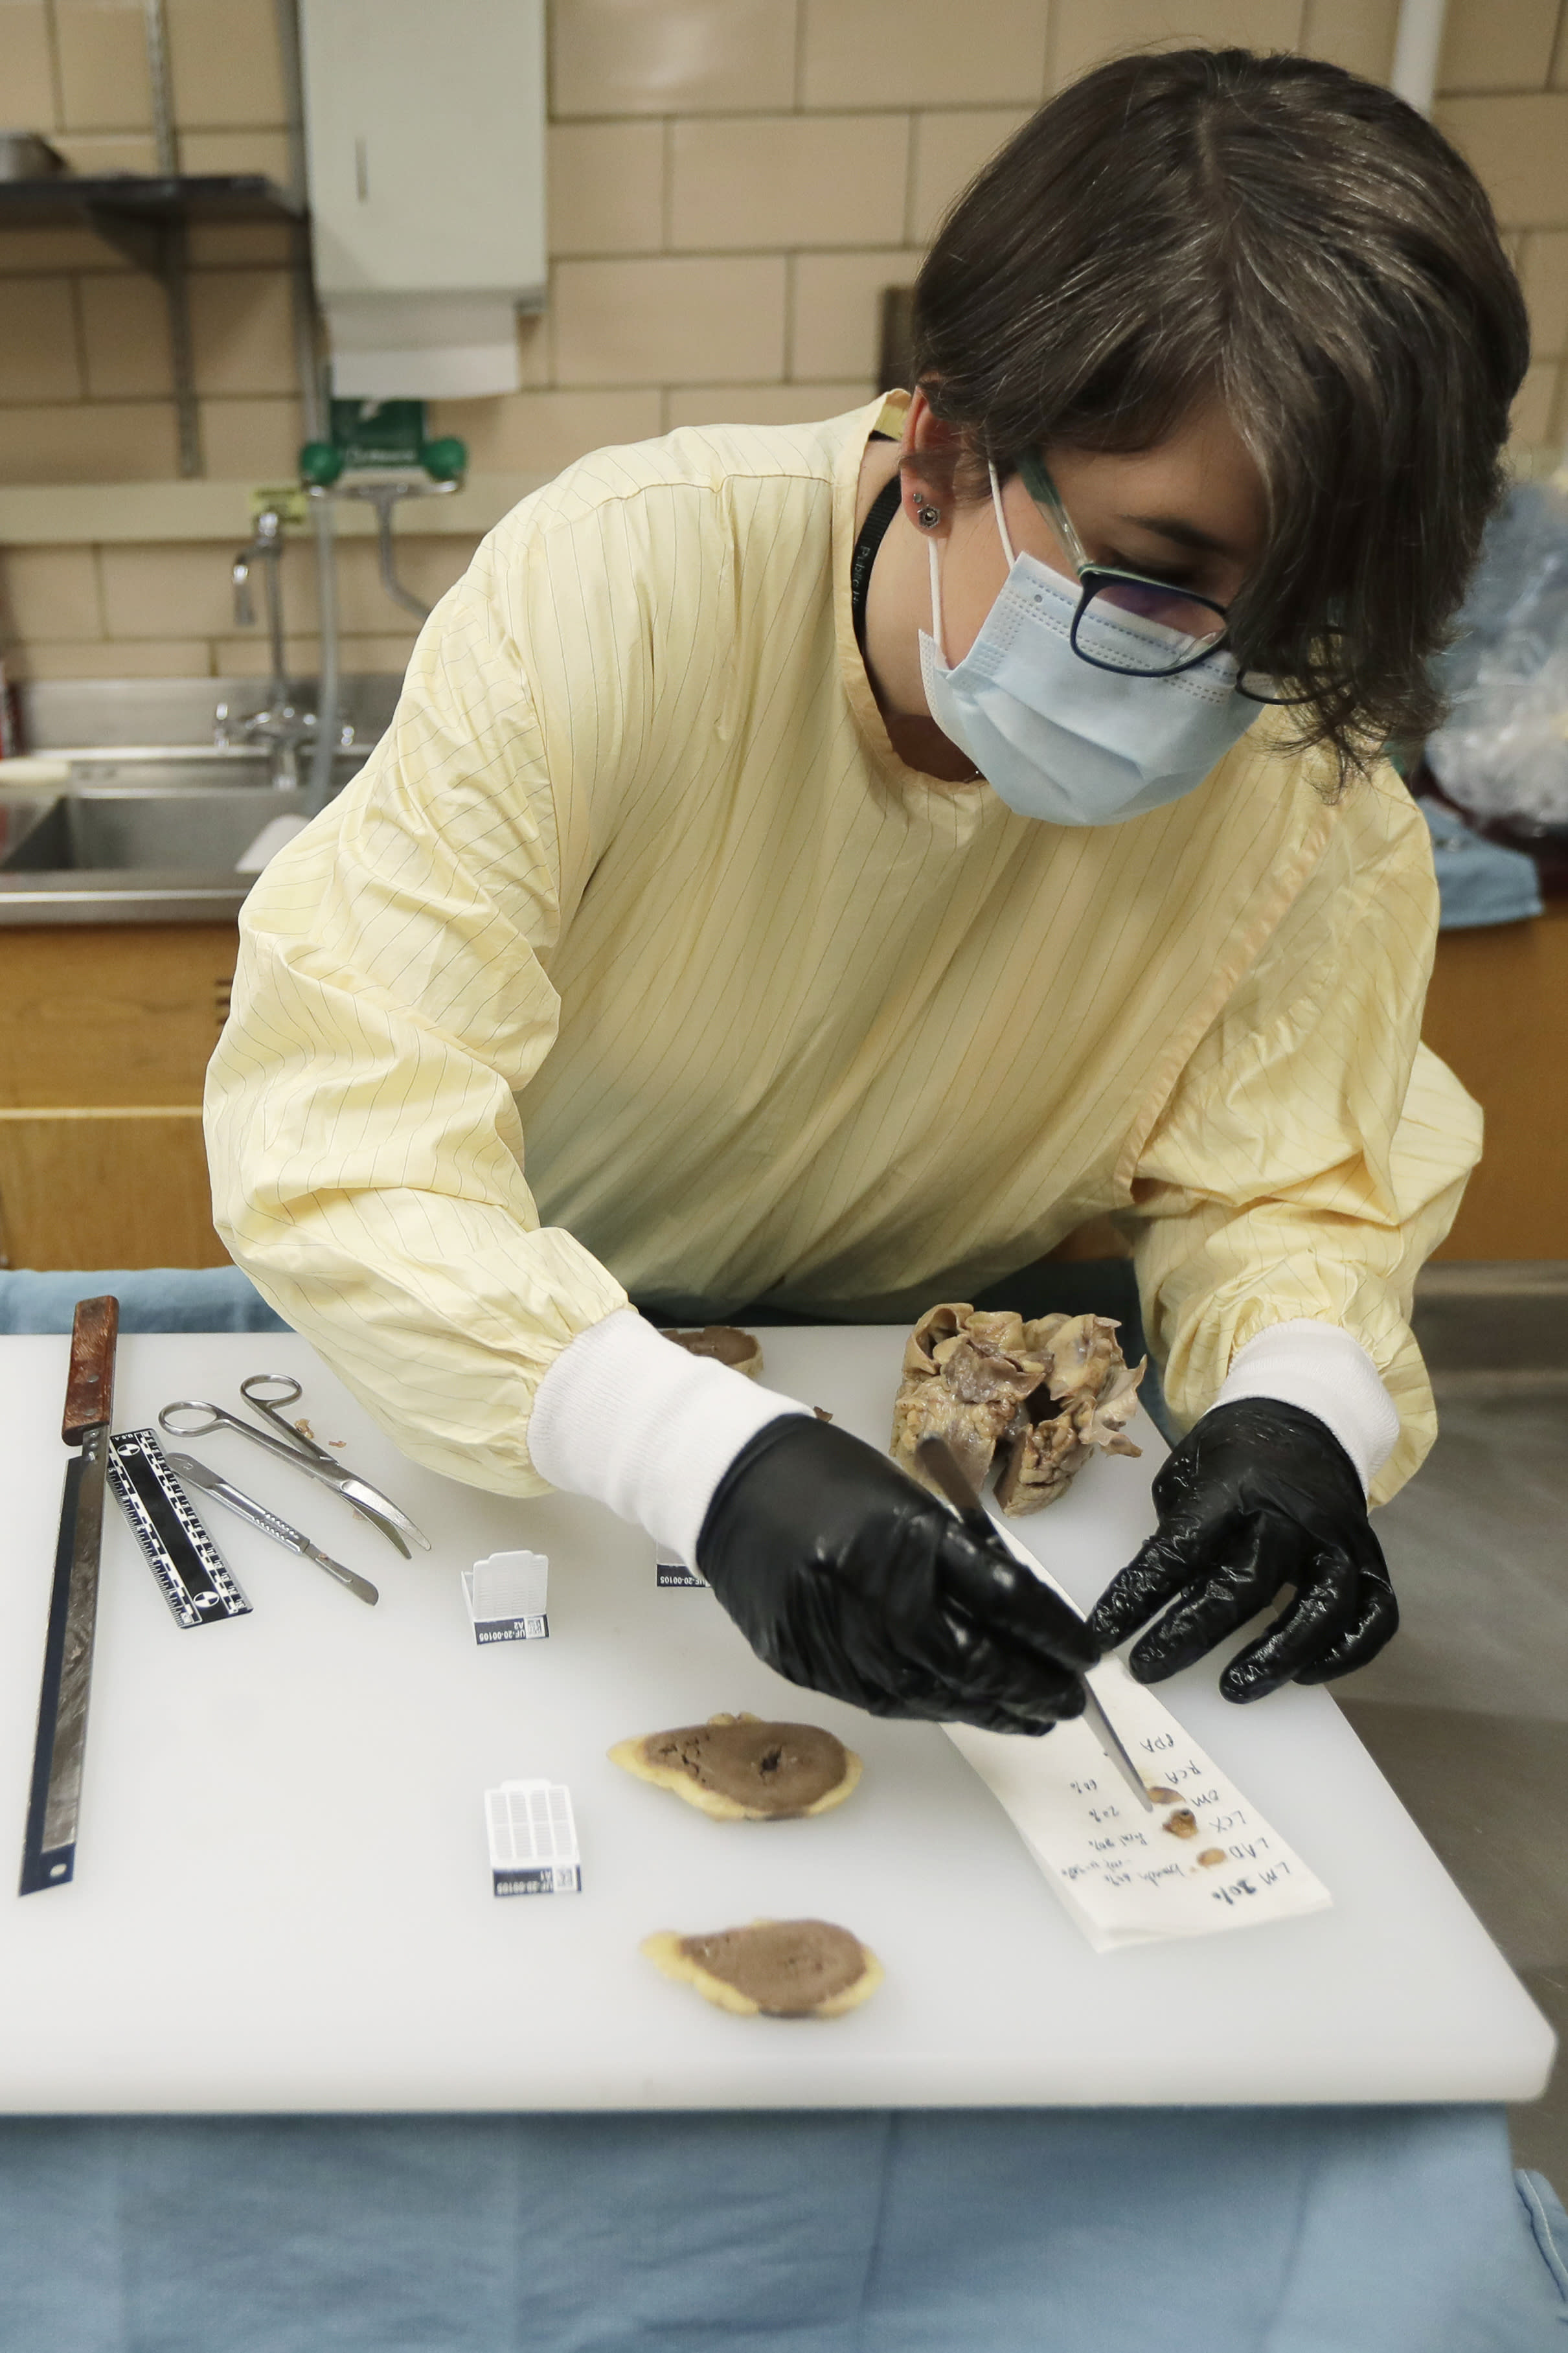 """Dr. Desiree Marshall, director of Autopsy and After Death Services for University of Washington Medicine, prepares samples from the preserved heart of a person who died of COVID-19 related complications, as she works in a negative-pressure laboratory, Tuesday, July 14, 2020, in Seattle. """"Each autopsy has the chance to tell us something new,"""" she says. And those insights from the bodies of the dead could lead to more effective treatment of the living. (AP Photo/Ted S. Warren)"""